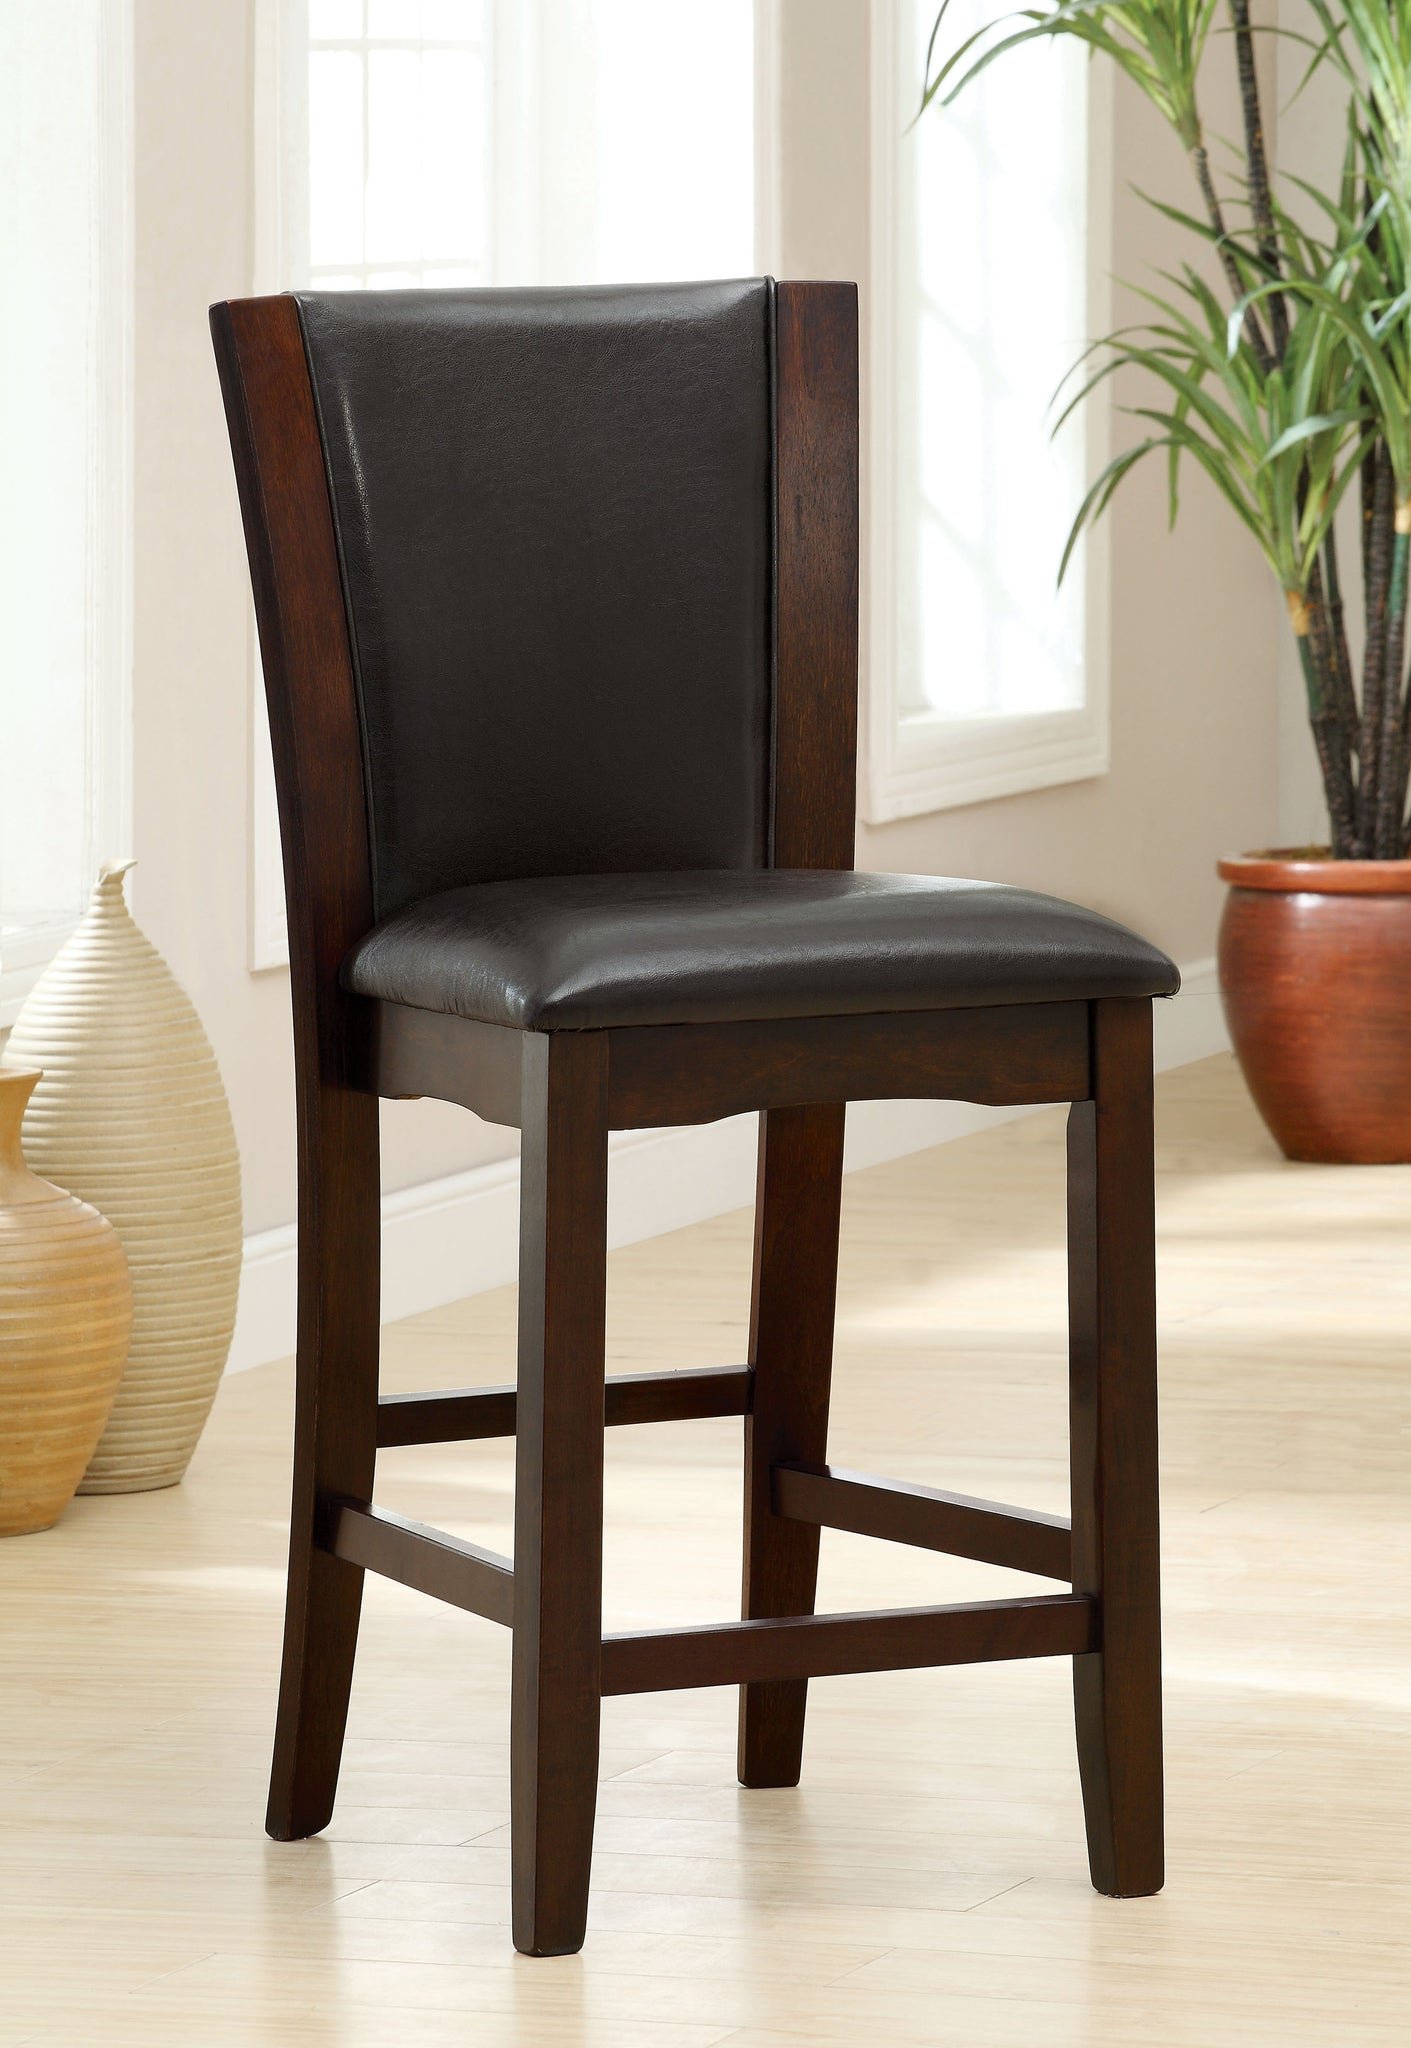 Gretch Contemporary Counter Height Chair, Dark Cherry